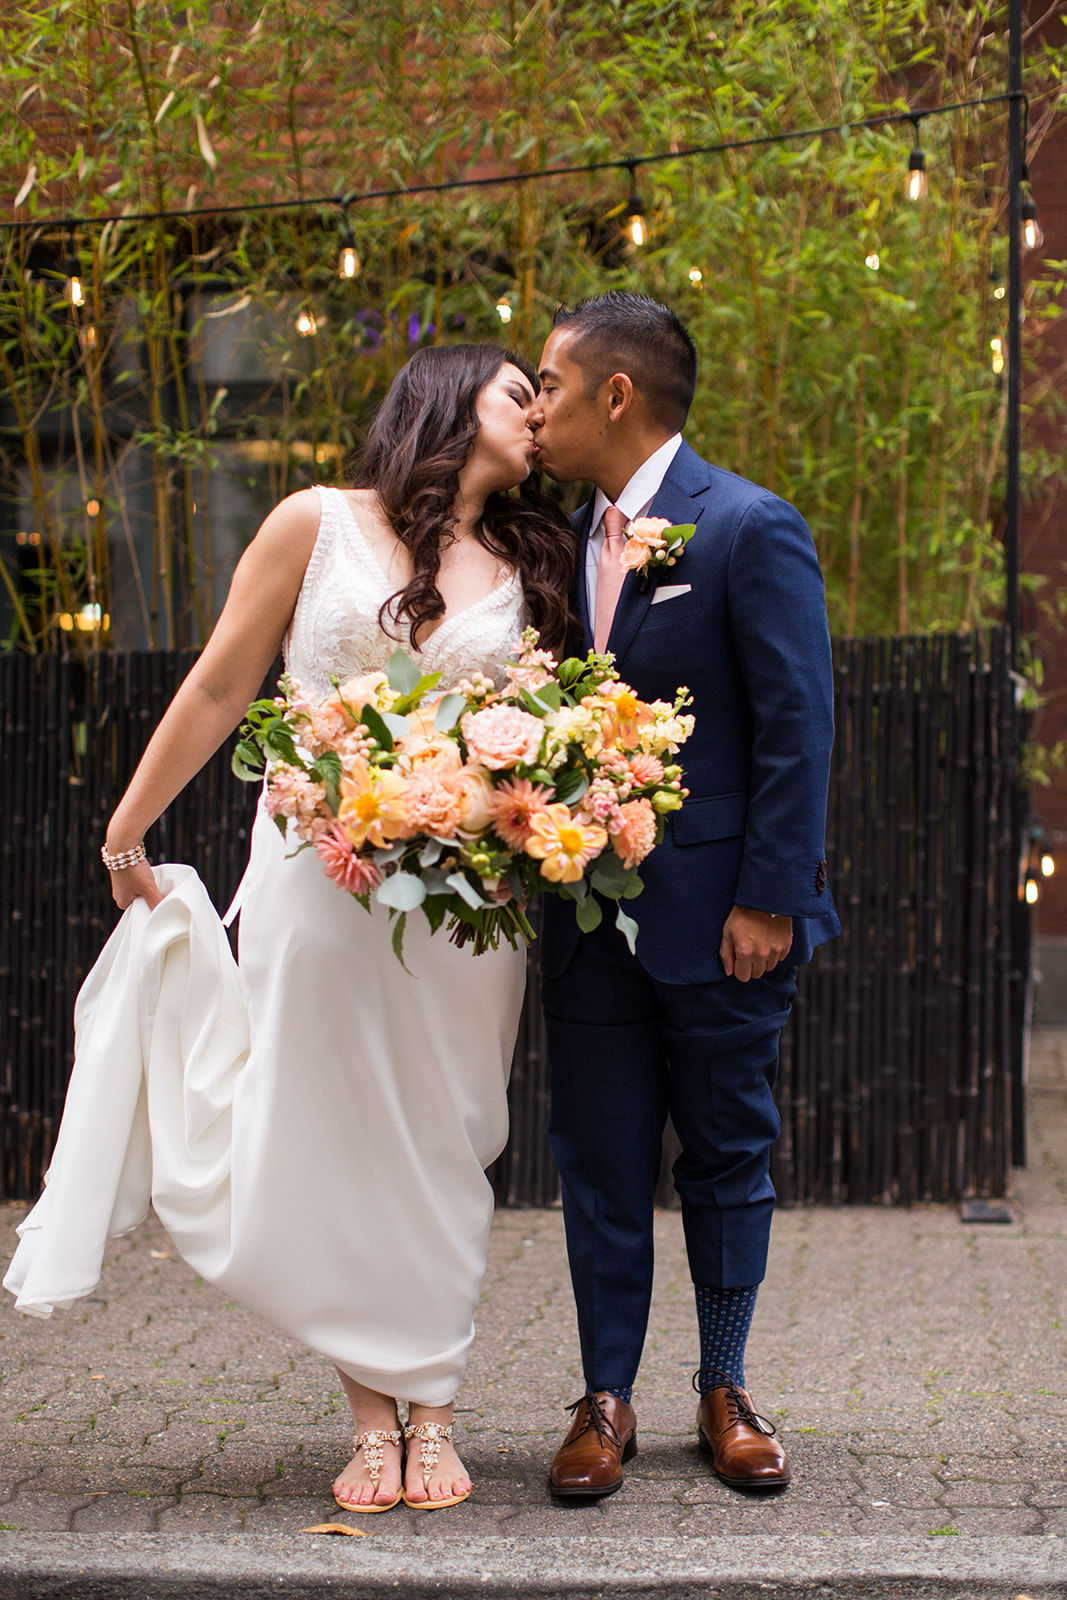 Bride and groom posing with a coral, peach and grey bridal bouquet for an Autumn Wedding at Chihuly Gardens and Glass | Flora Nova Design